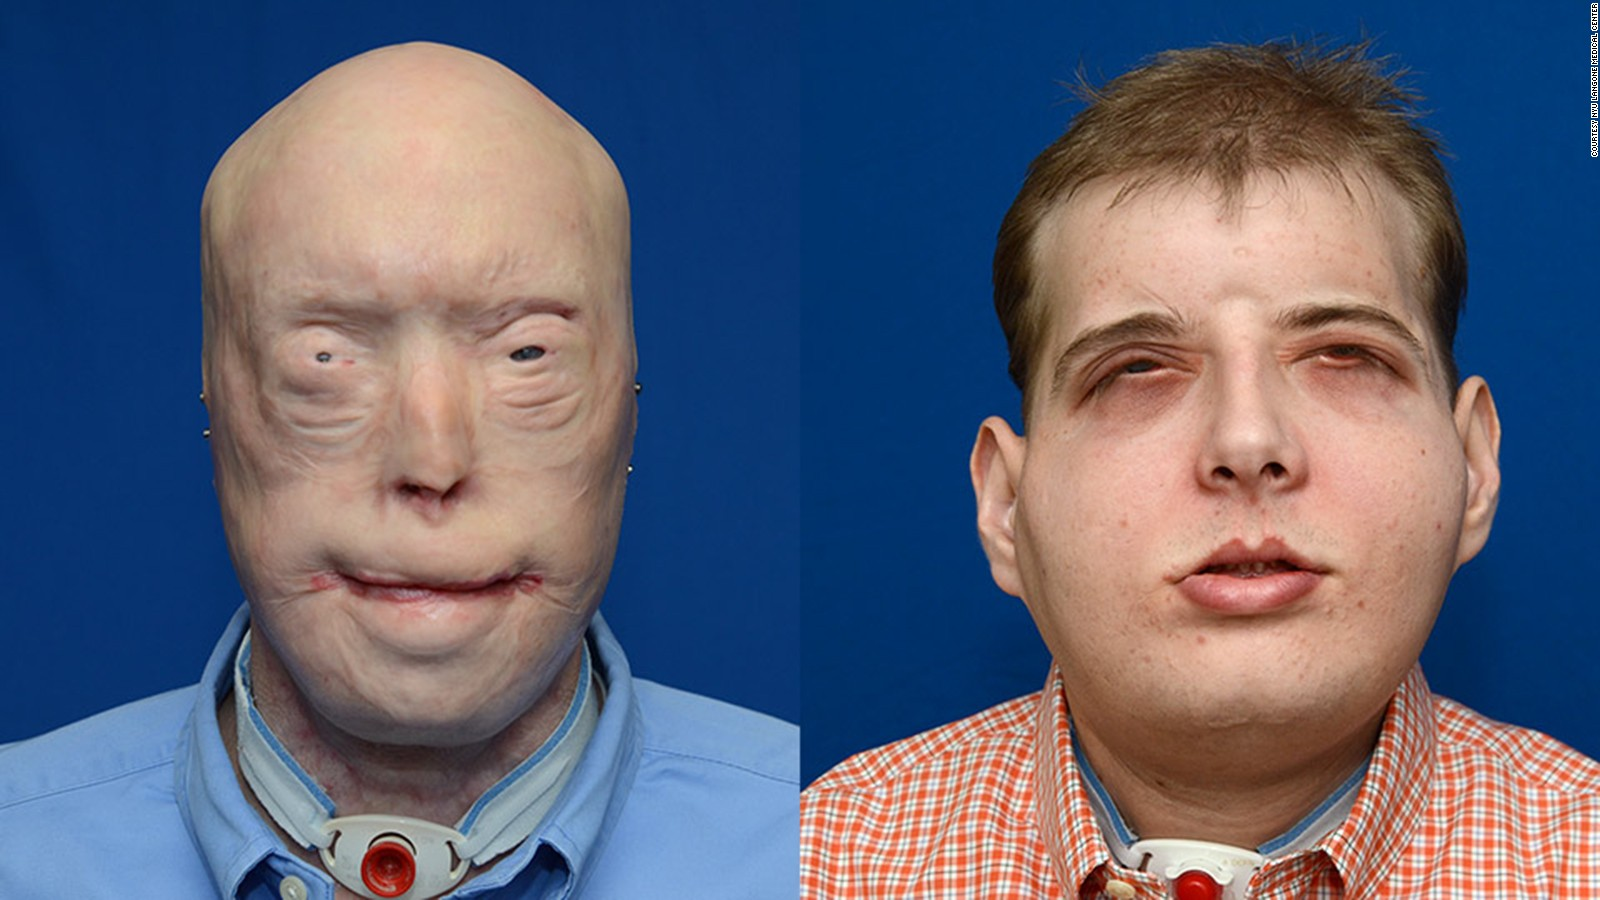 World's first full face transplant pictures